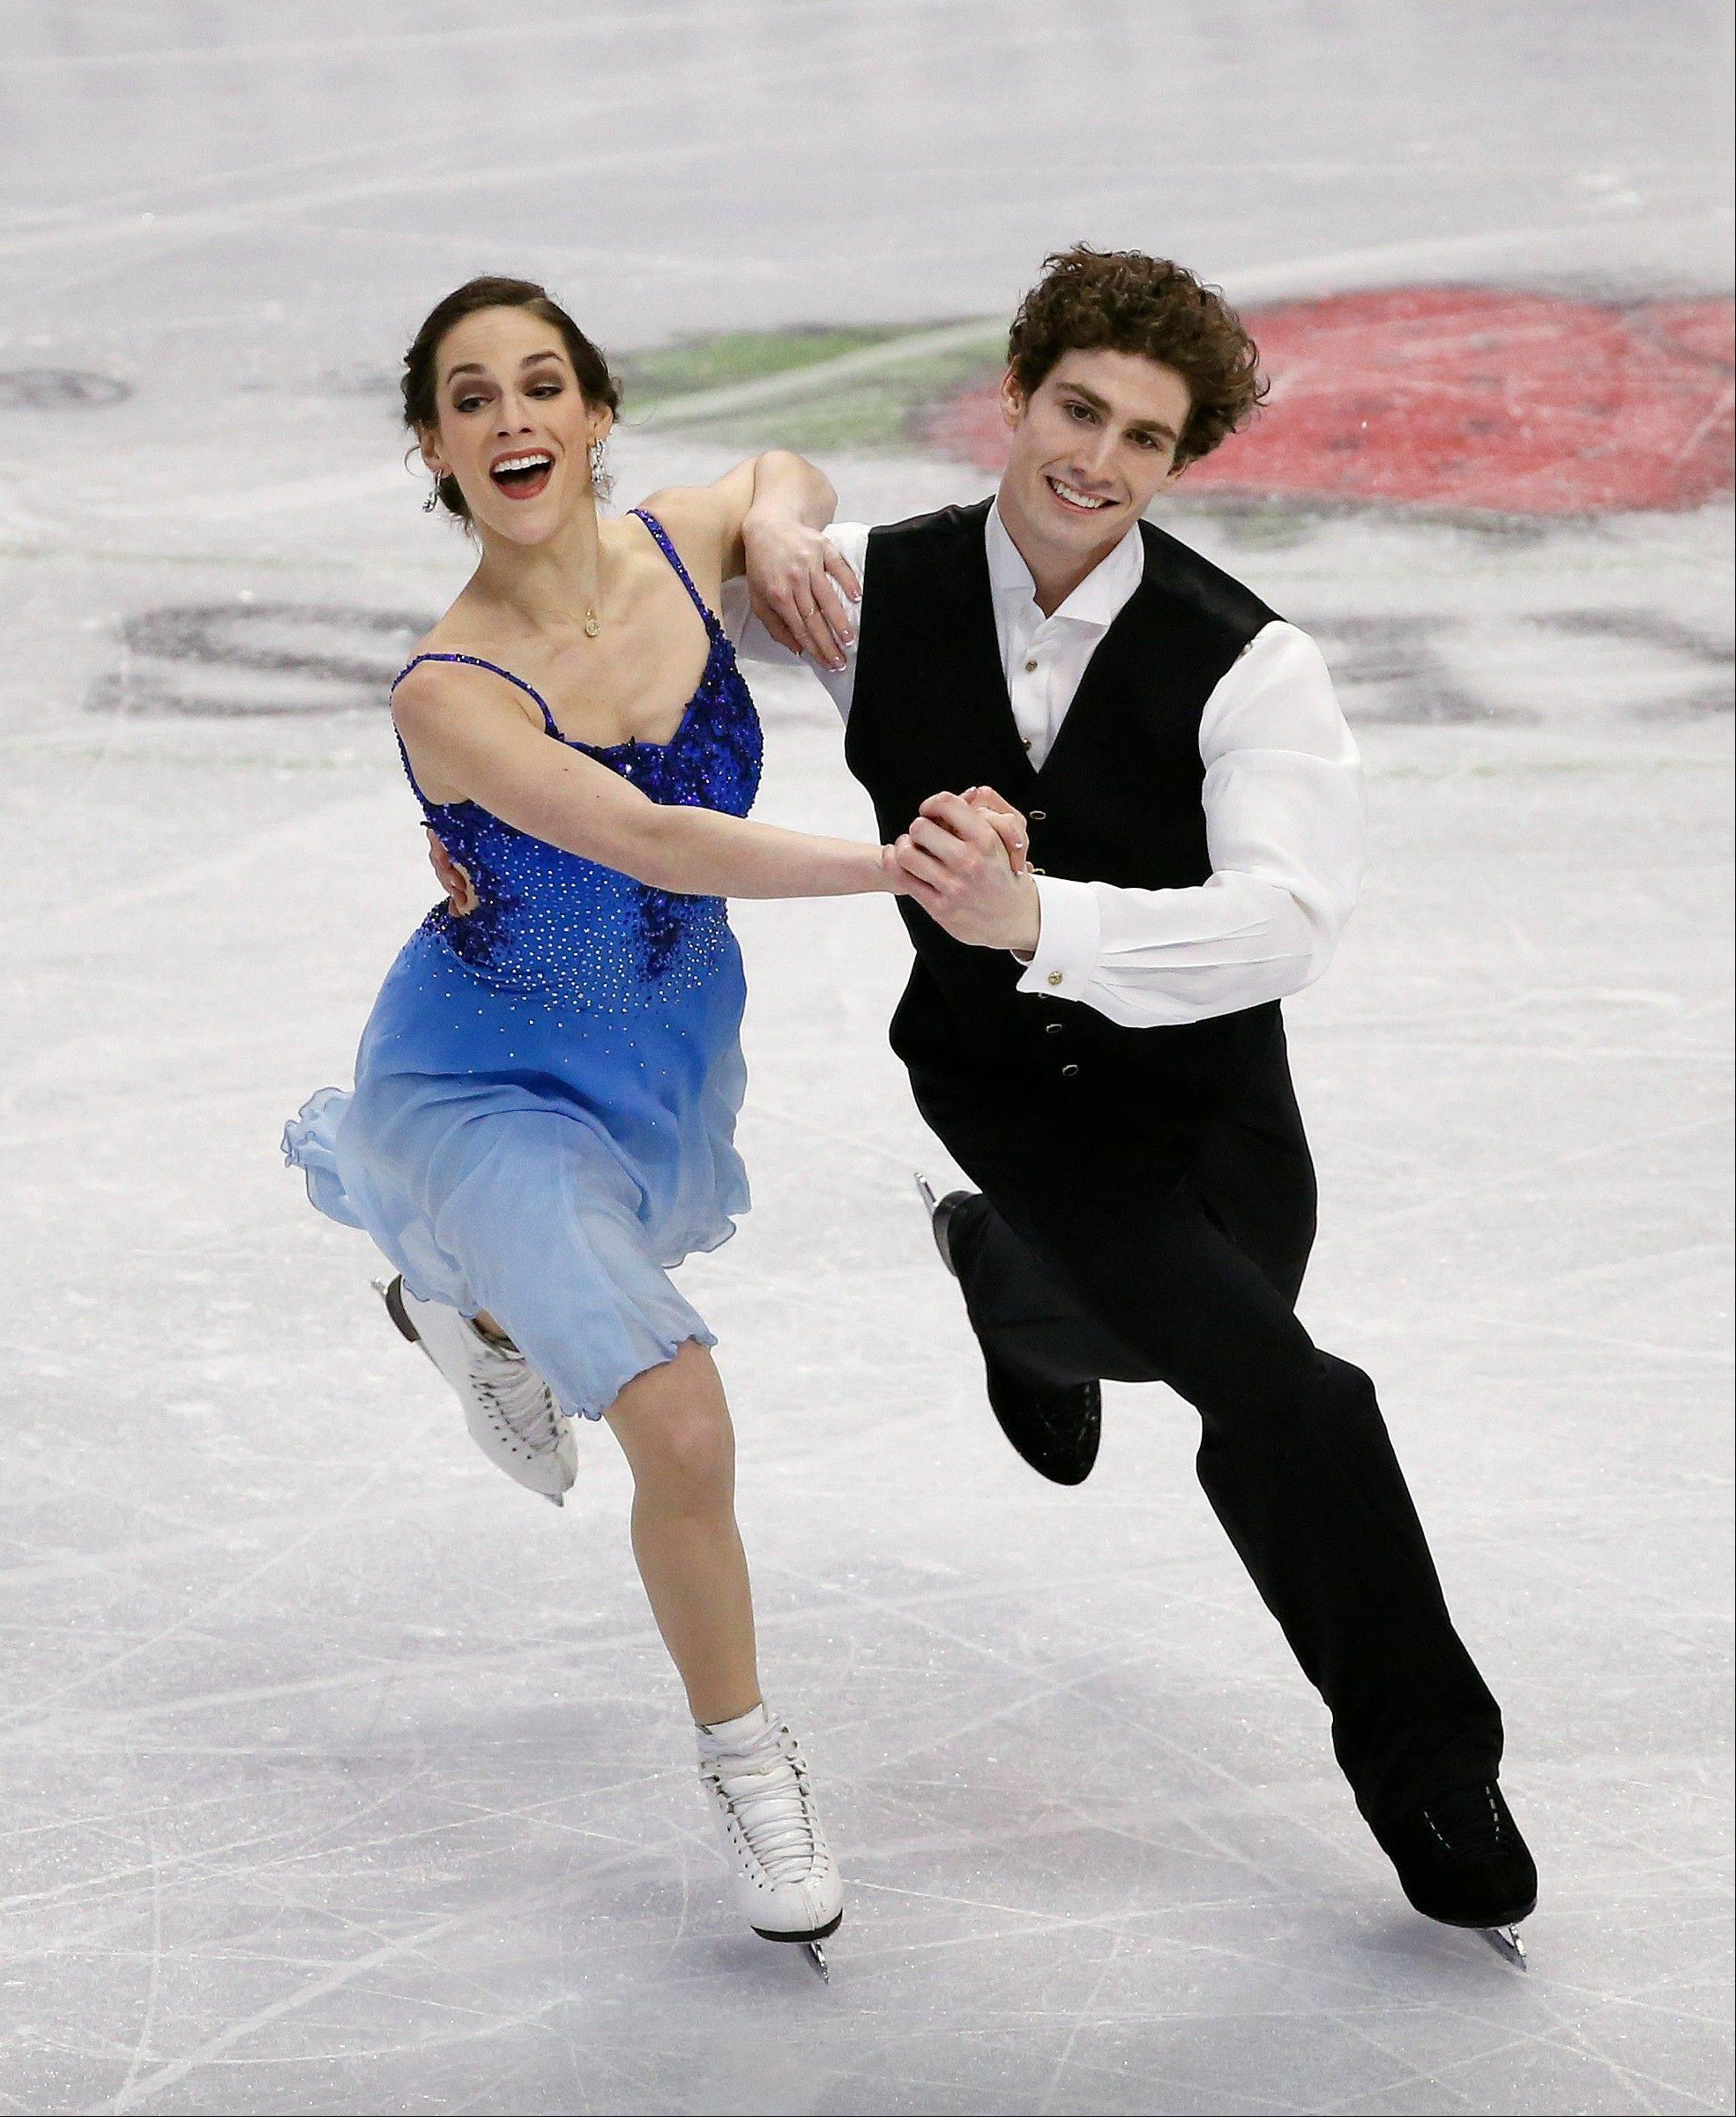 Collin Brubaker, 25, of Algonquin, skates with Alissandra Aronow earlier this year during the ice dancing short program at the U.S. Figure Skating Championships. Brubaker and his older brother Rockne train with several other elite skaters now competing at the Olympics.